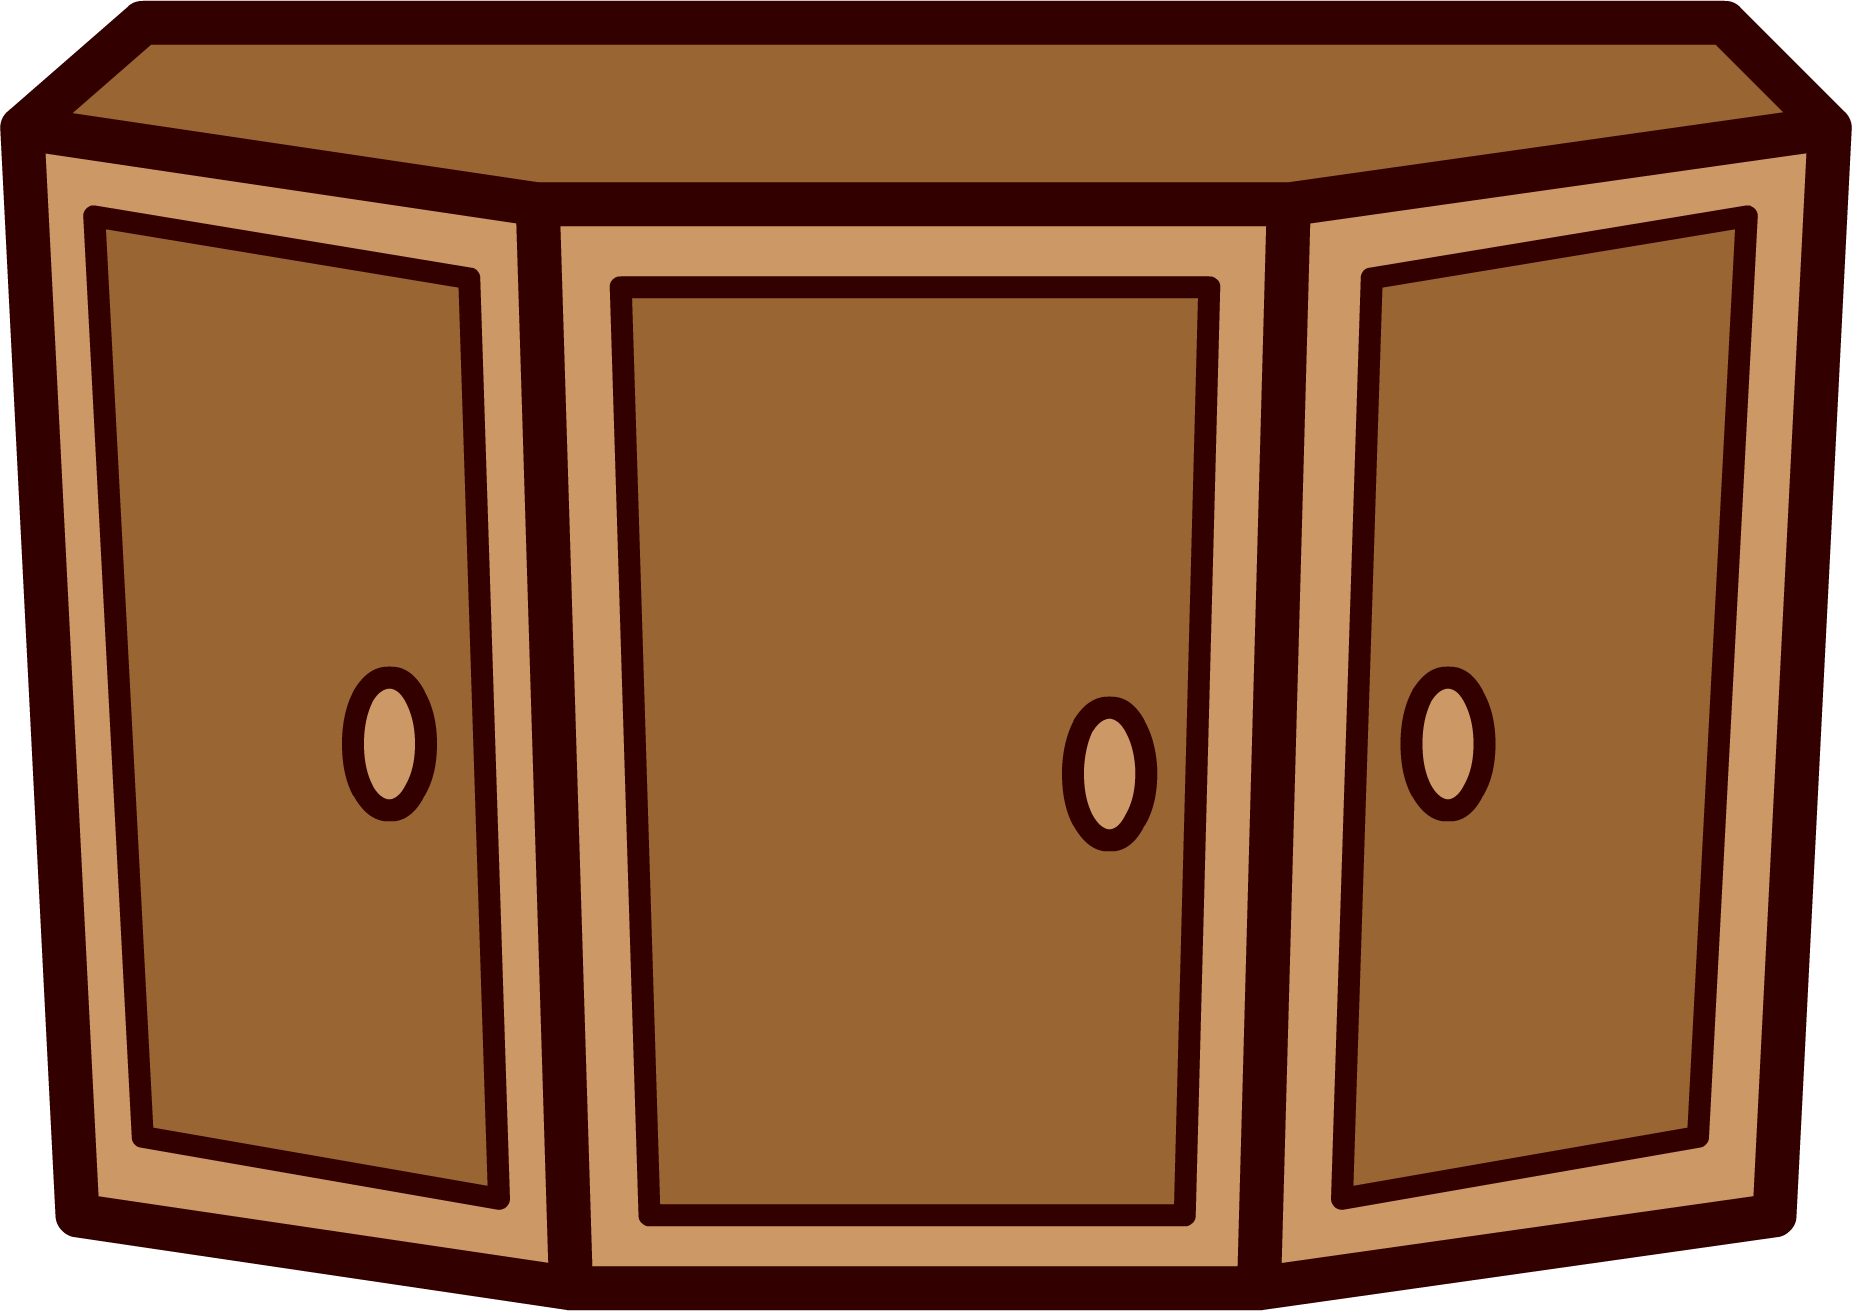 image wood cabinet png club penguin wiki fandom powered by wikia rh clubpenguin wikia com Kitchen Cabinet Clip Art Black and White Upscale Kitchen Cabinets Clip Art